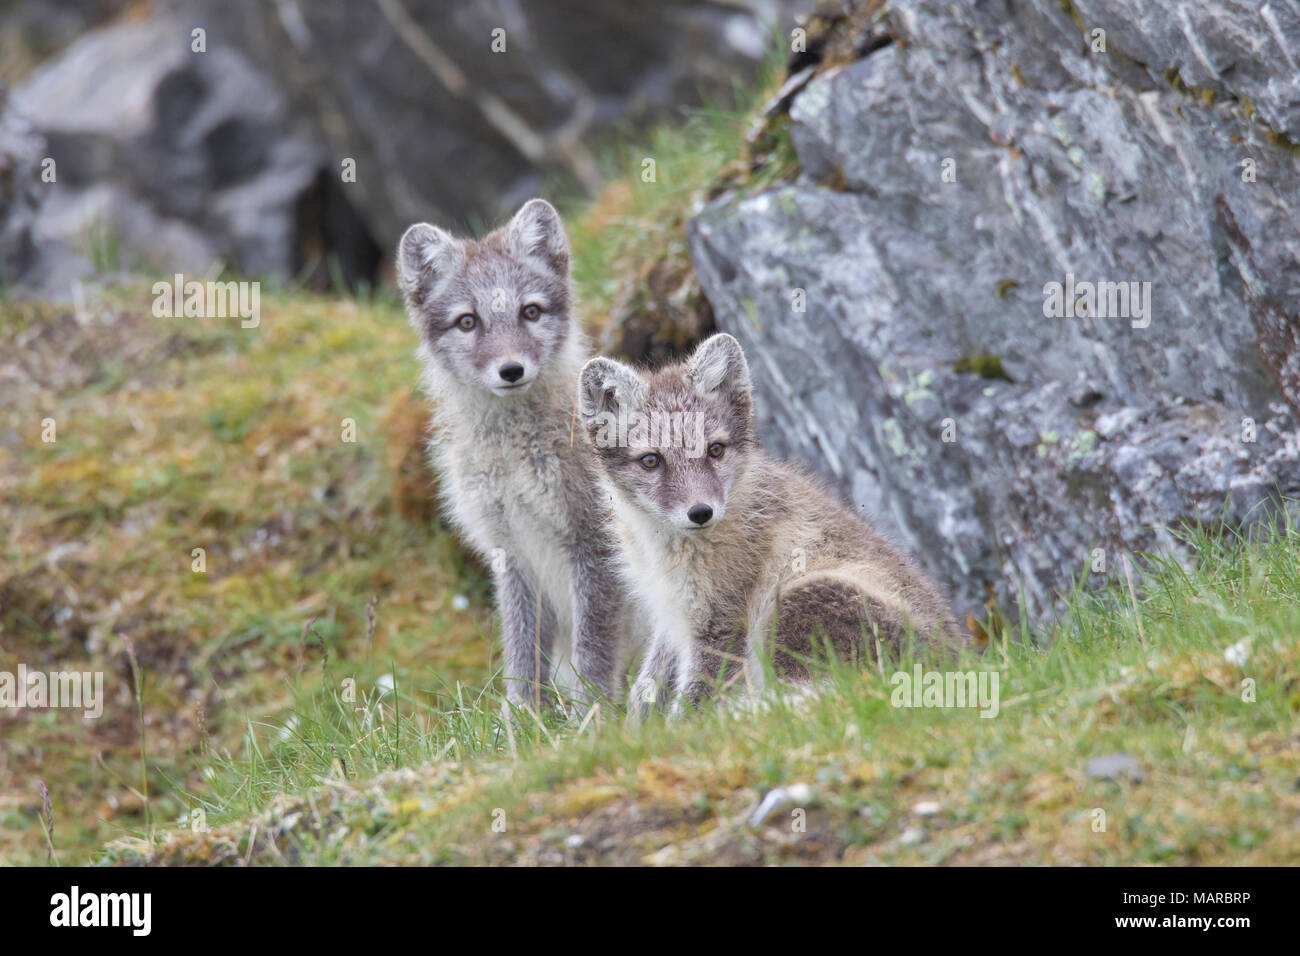 Arctic Fox (Alopex lagopus). Pair of juveniles sitting next to a rock. Svalbard, Norway - Stock Image